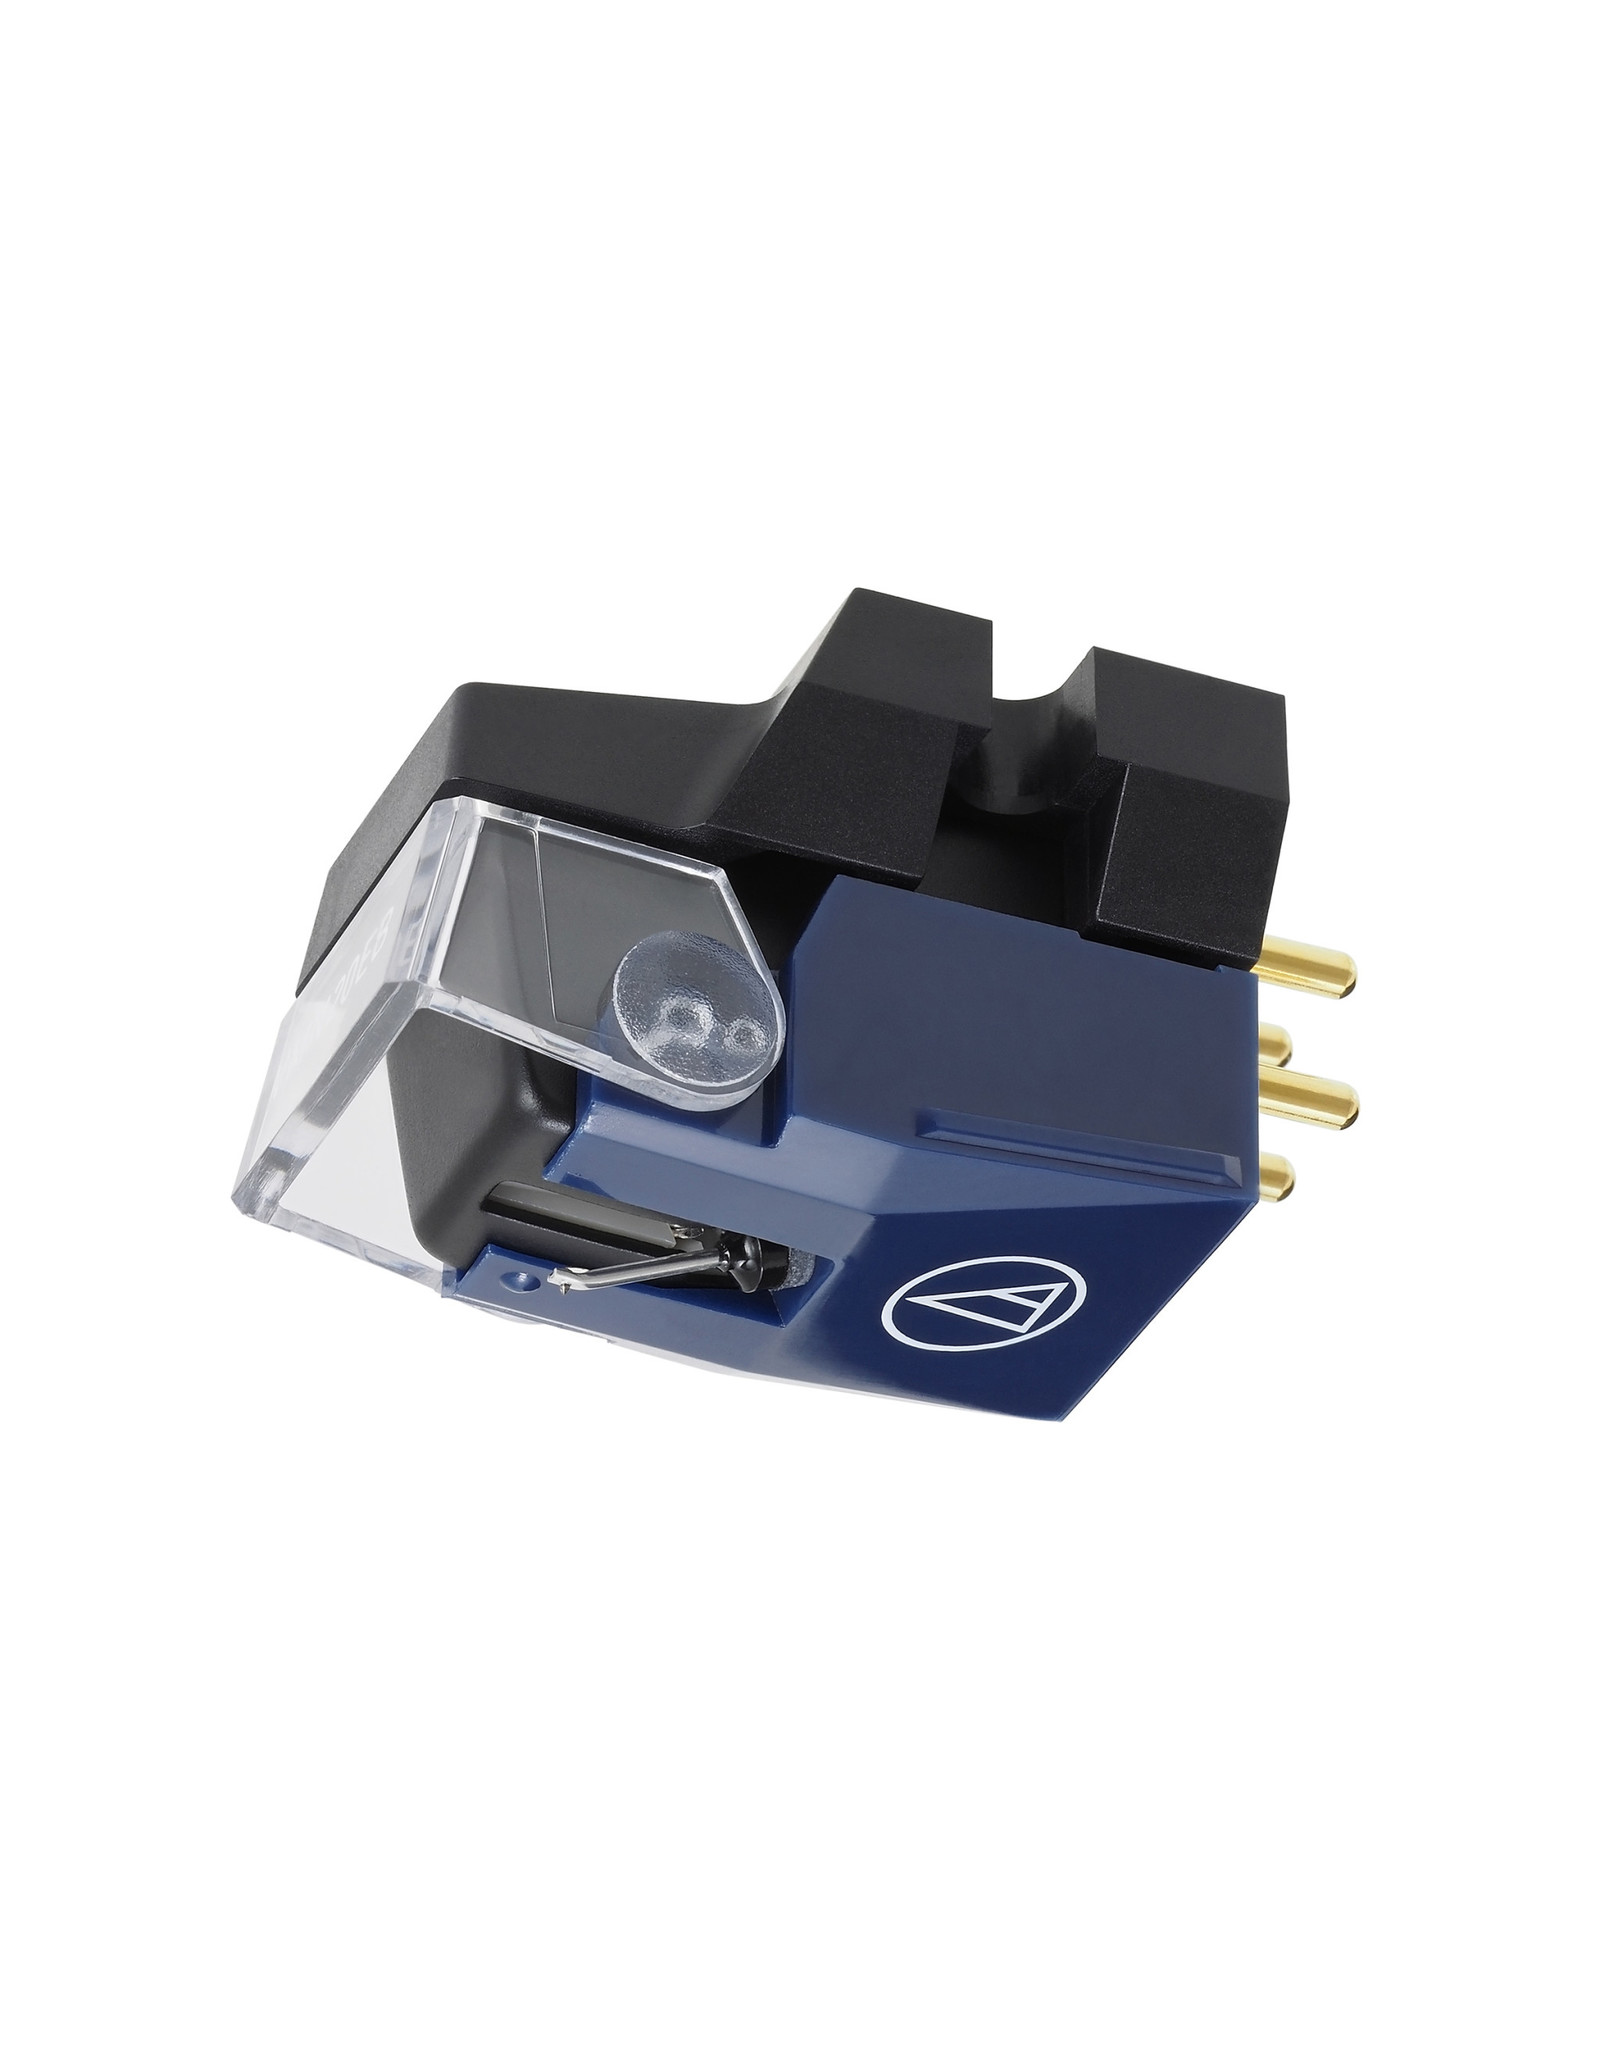 Audio-Technica Audio-Technica VM520EB Elliptical Phono Cartridge